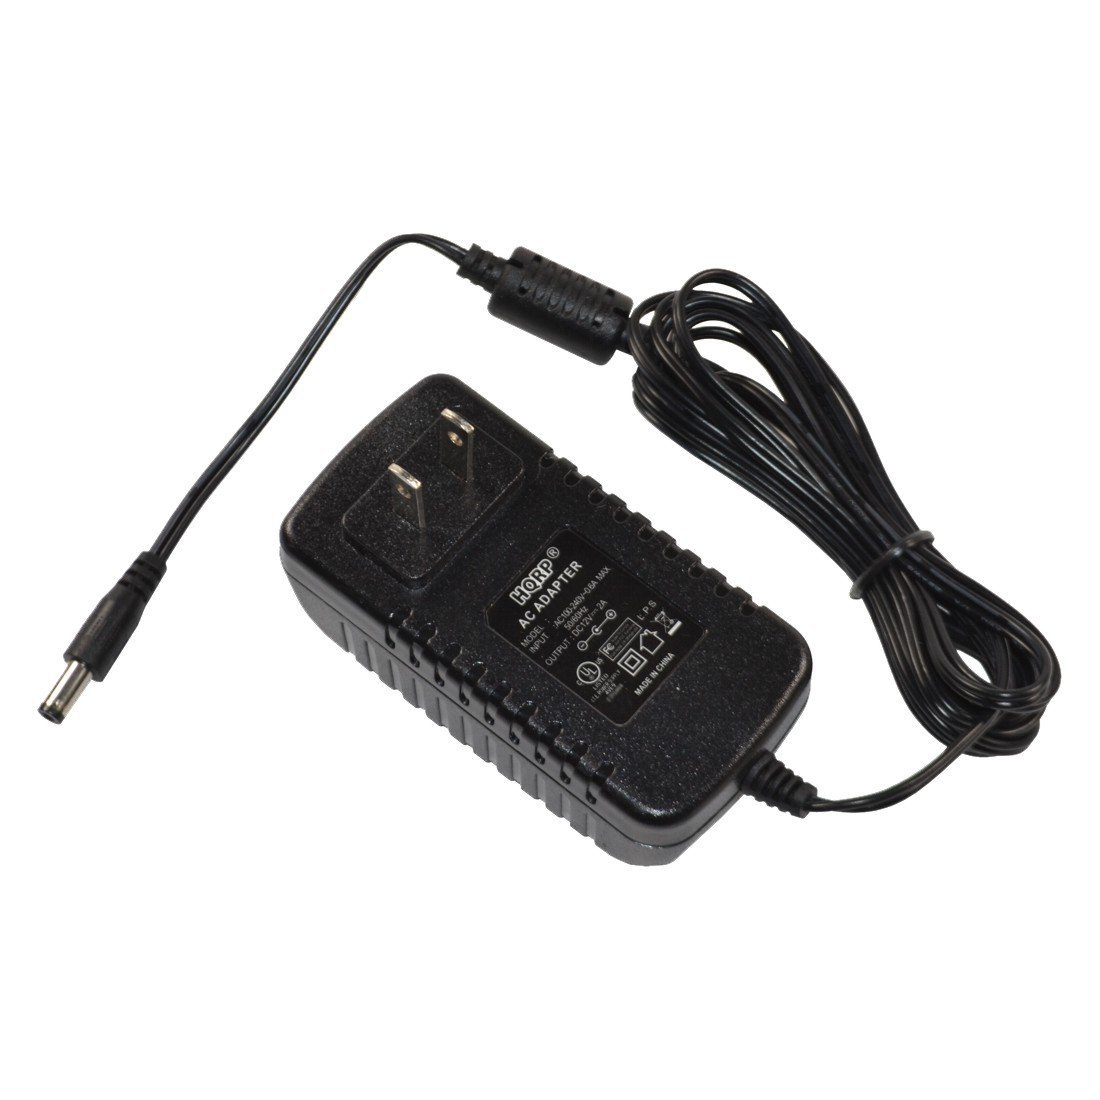 HQRP 12V AC Adapter/Power Supply for SWANN NHD-806 720P HD Security Camera; SWNHD-806CAM [UL Listed] Plus HQRP Euro Plug Adapter